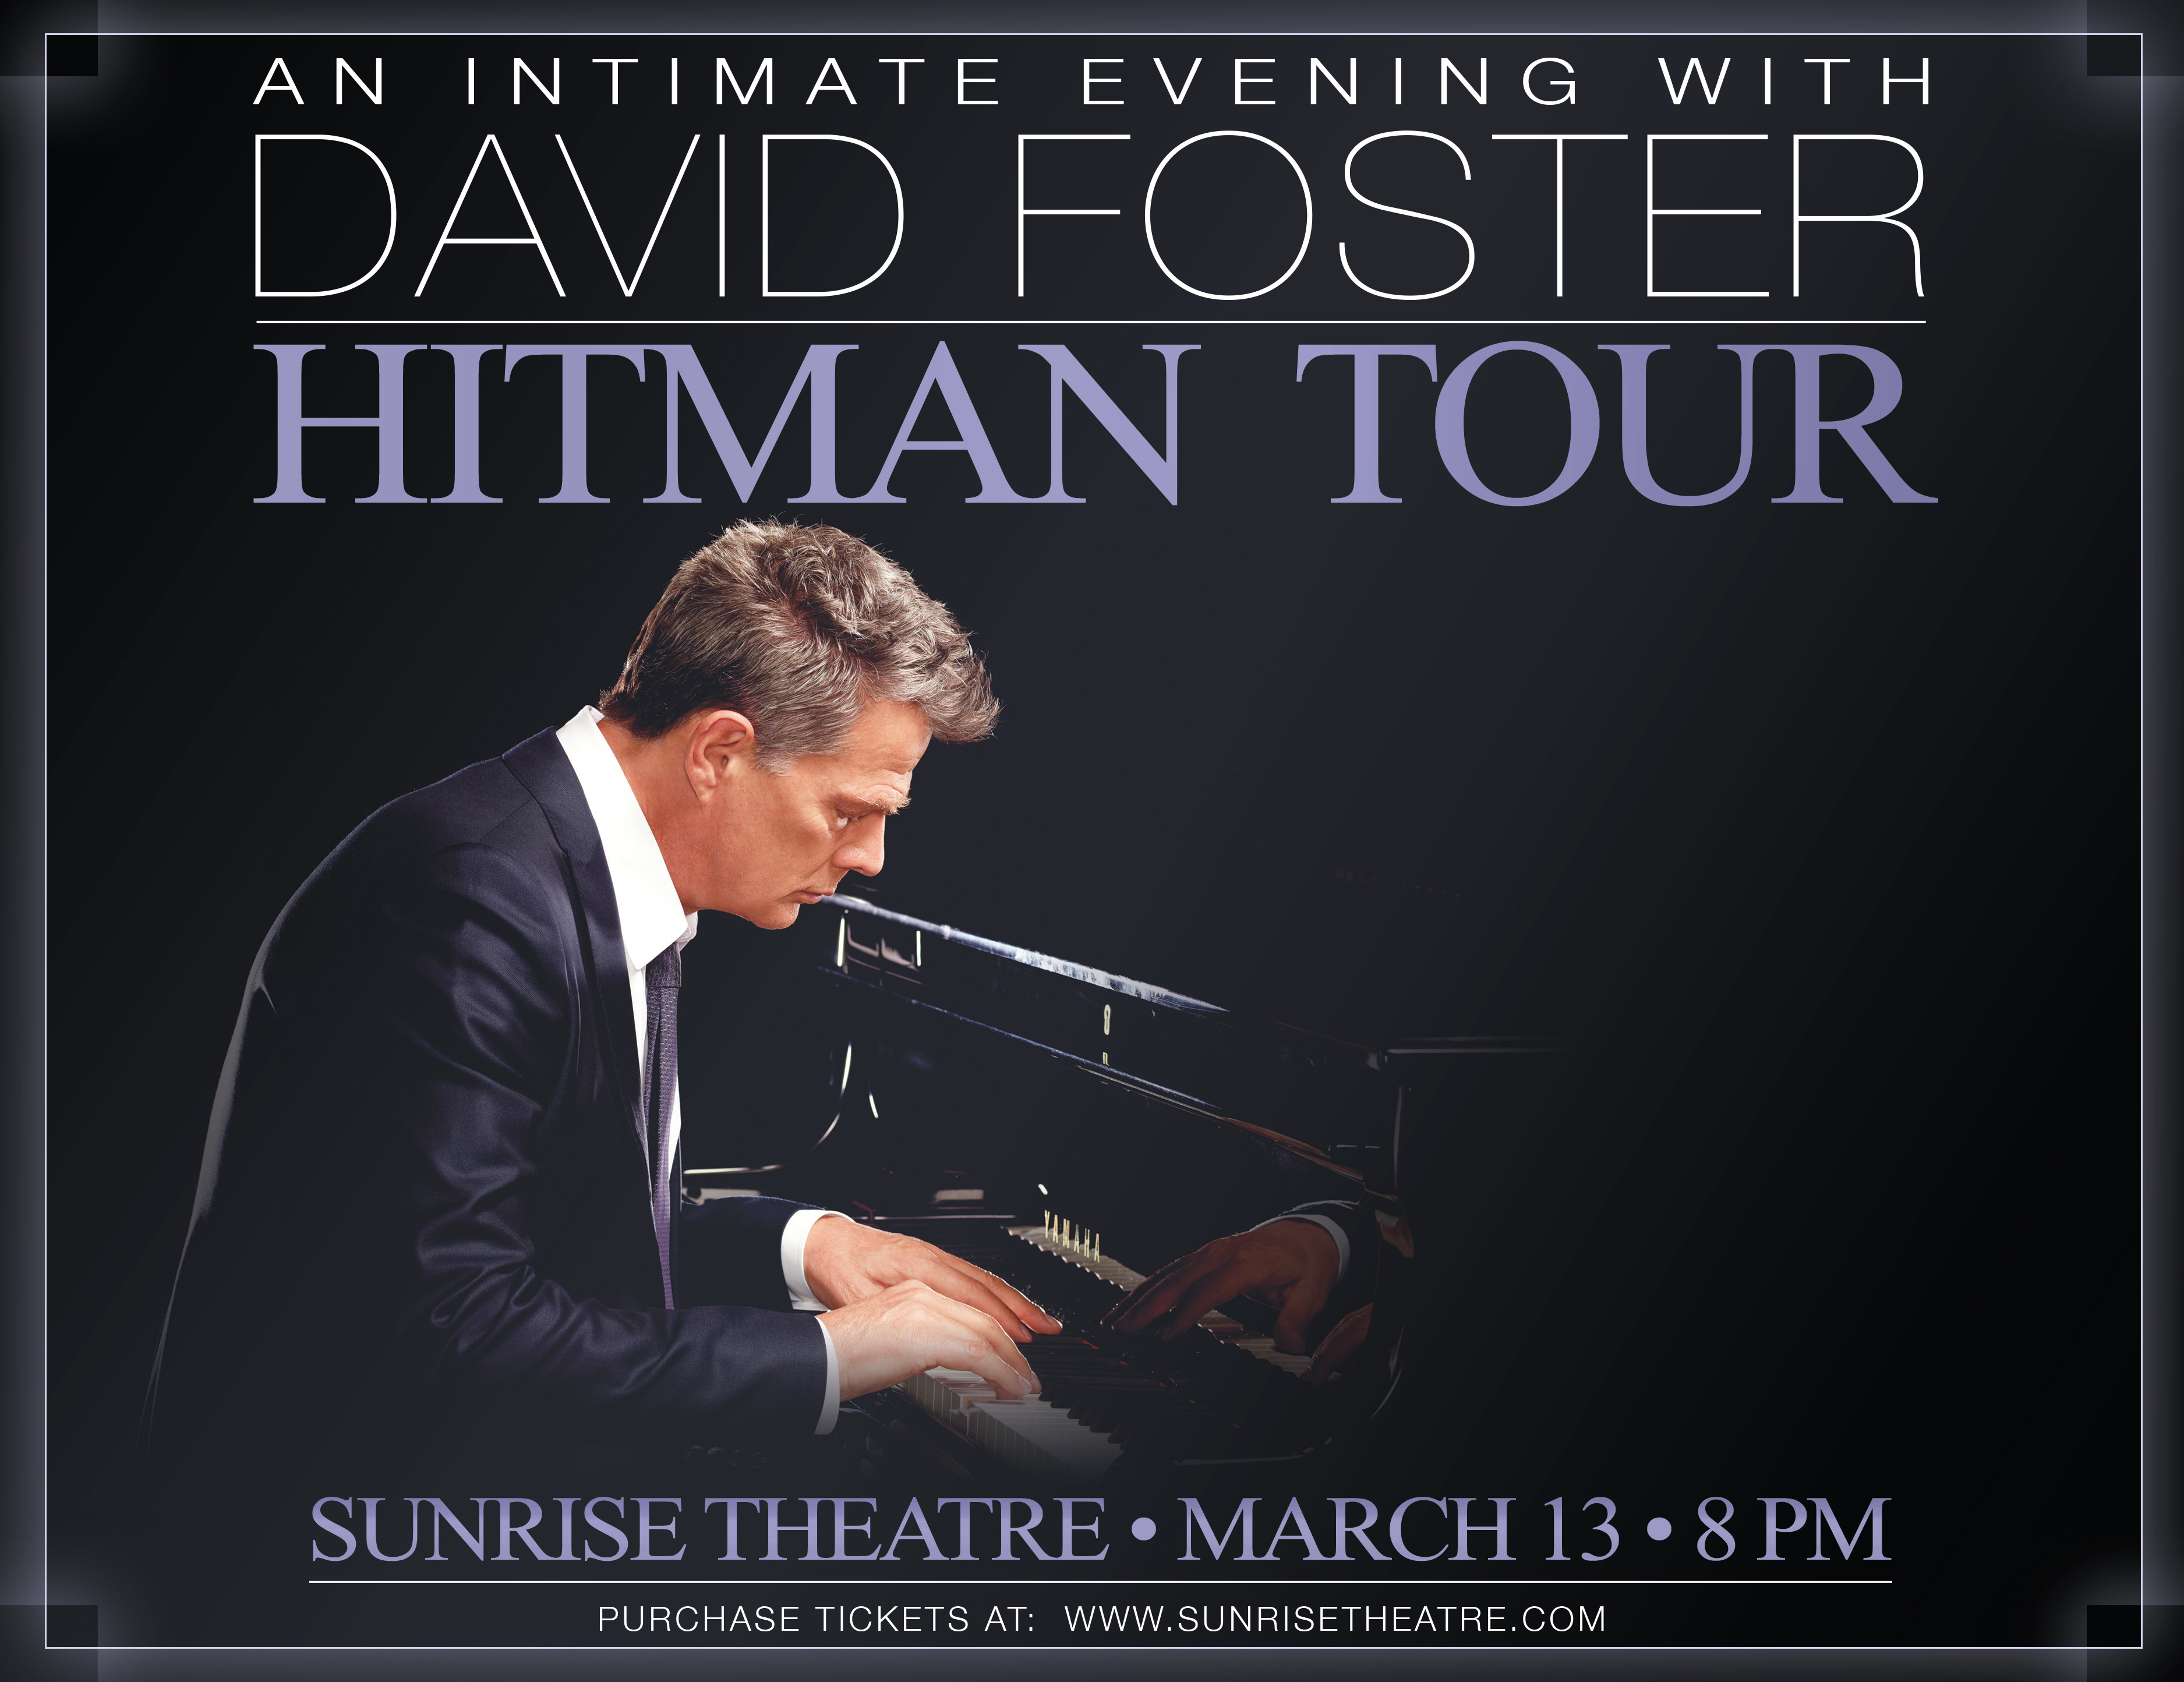 An Intimate Evening With David Foster - Hitman Tour